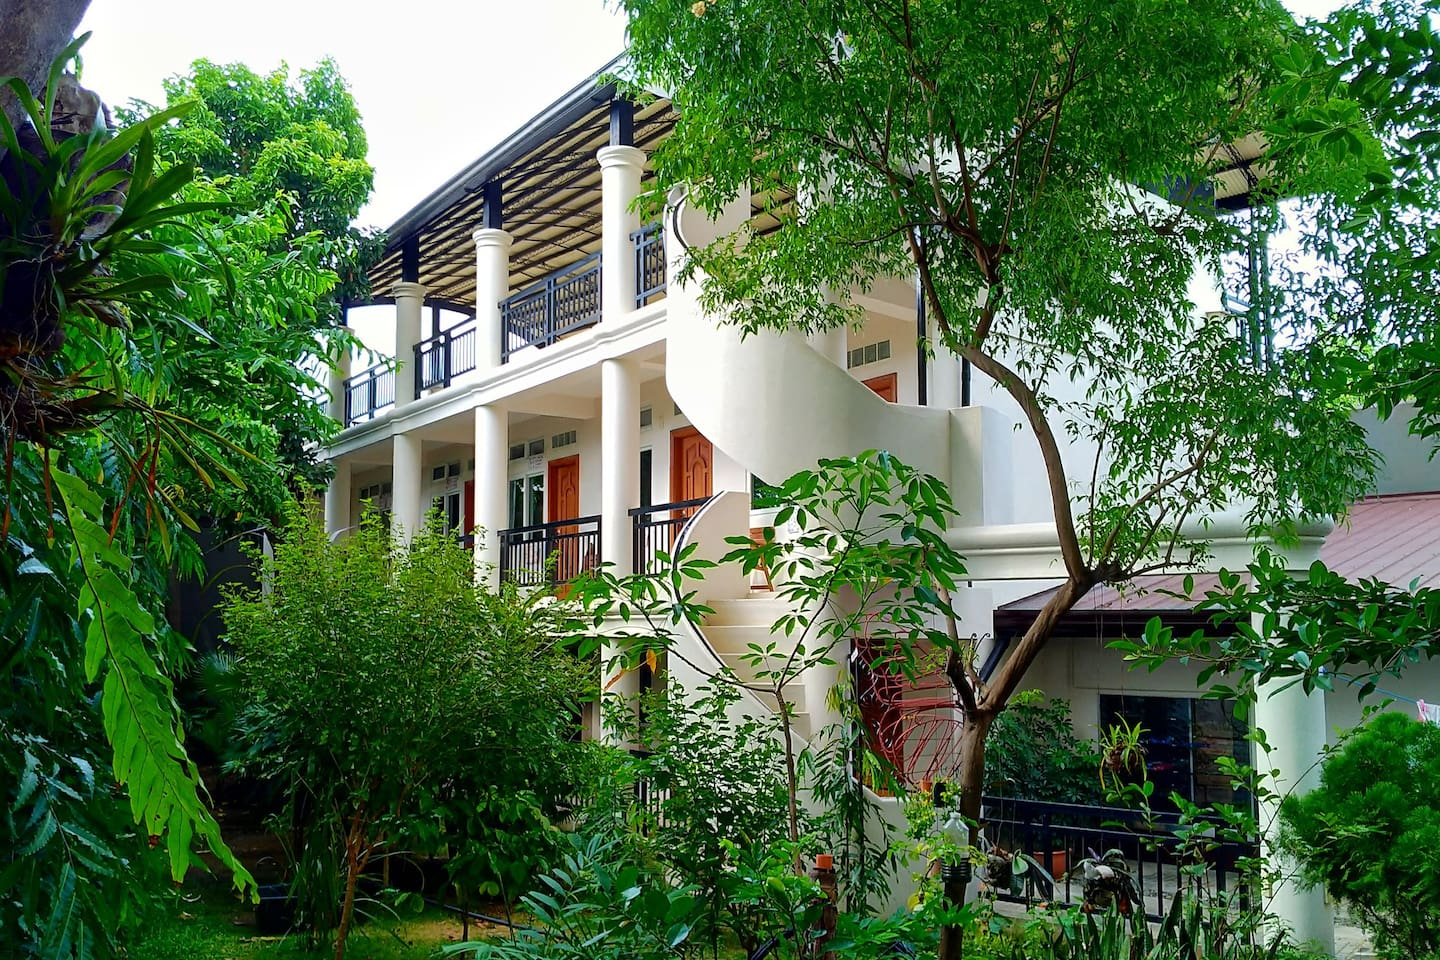 Our 3 storey Guest Building with 5 private Hotel-style rooms.